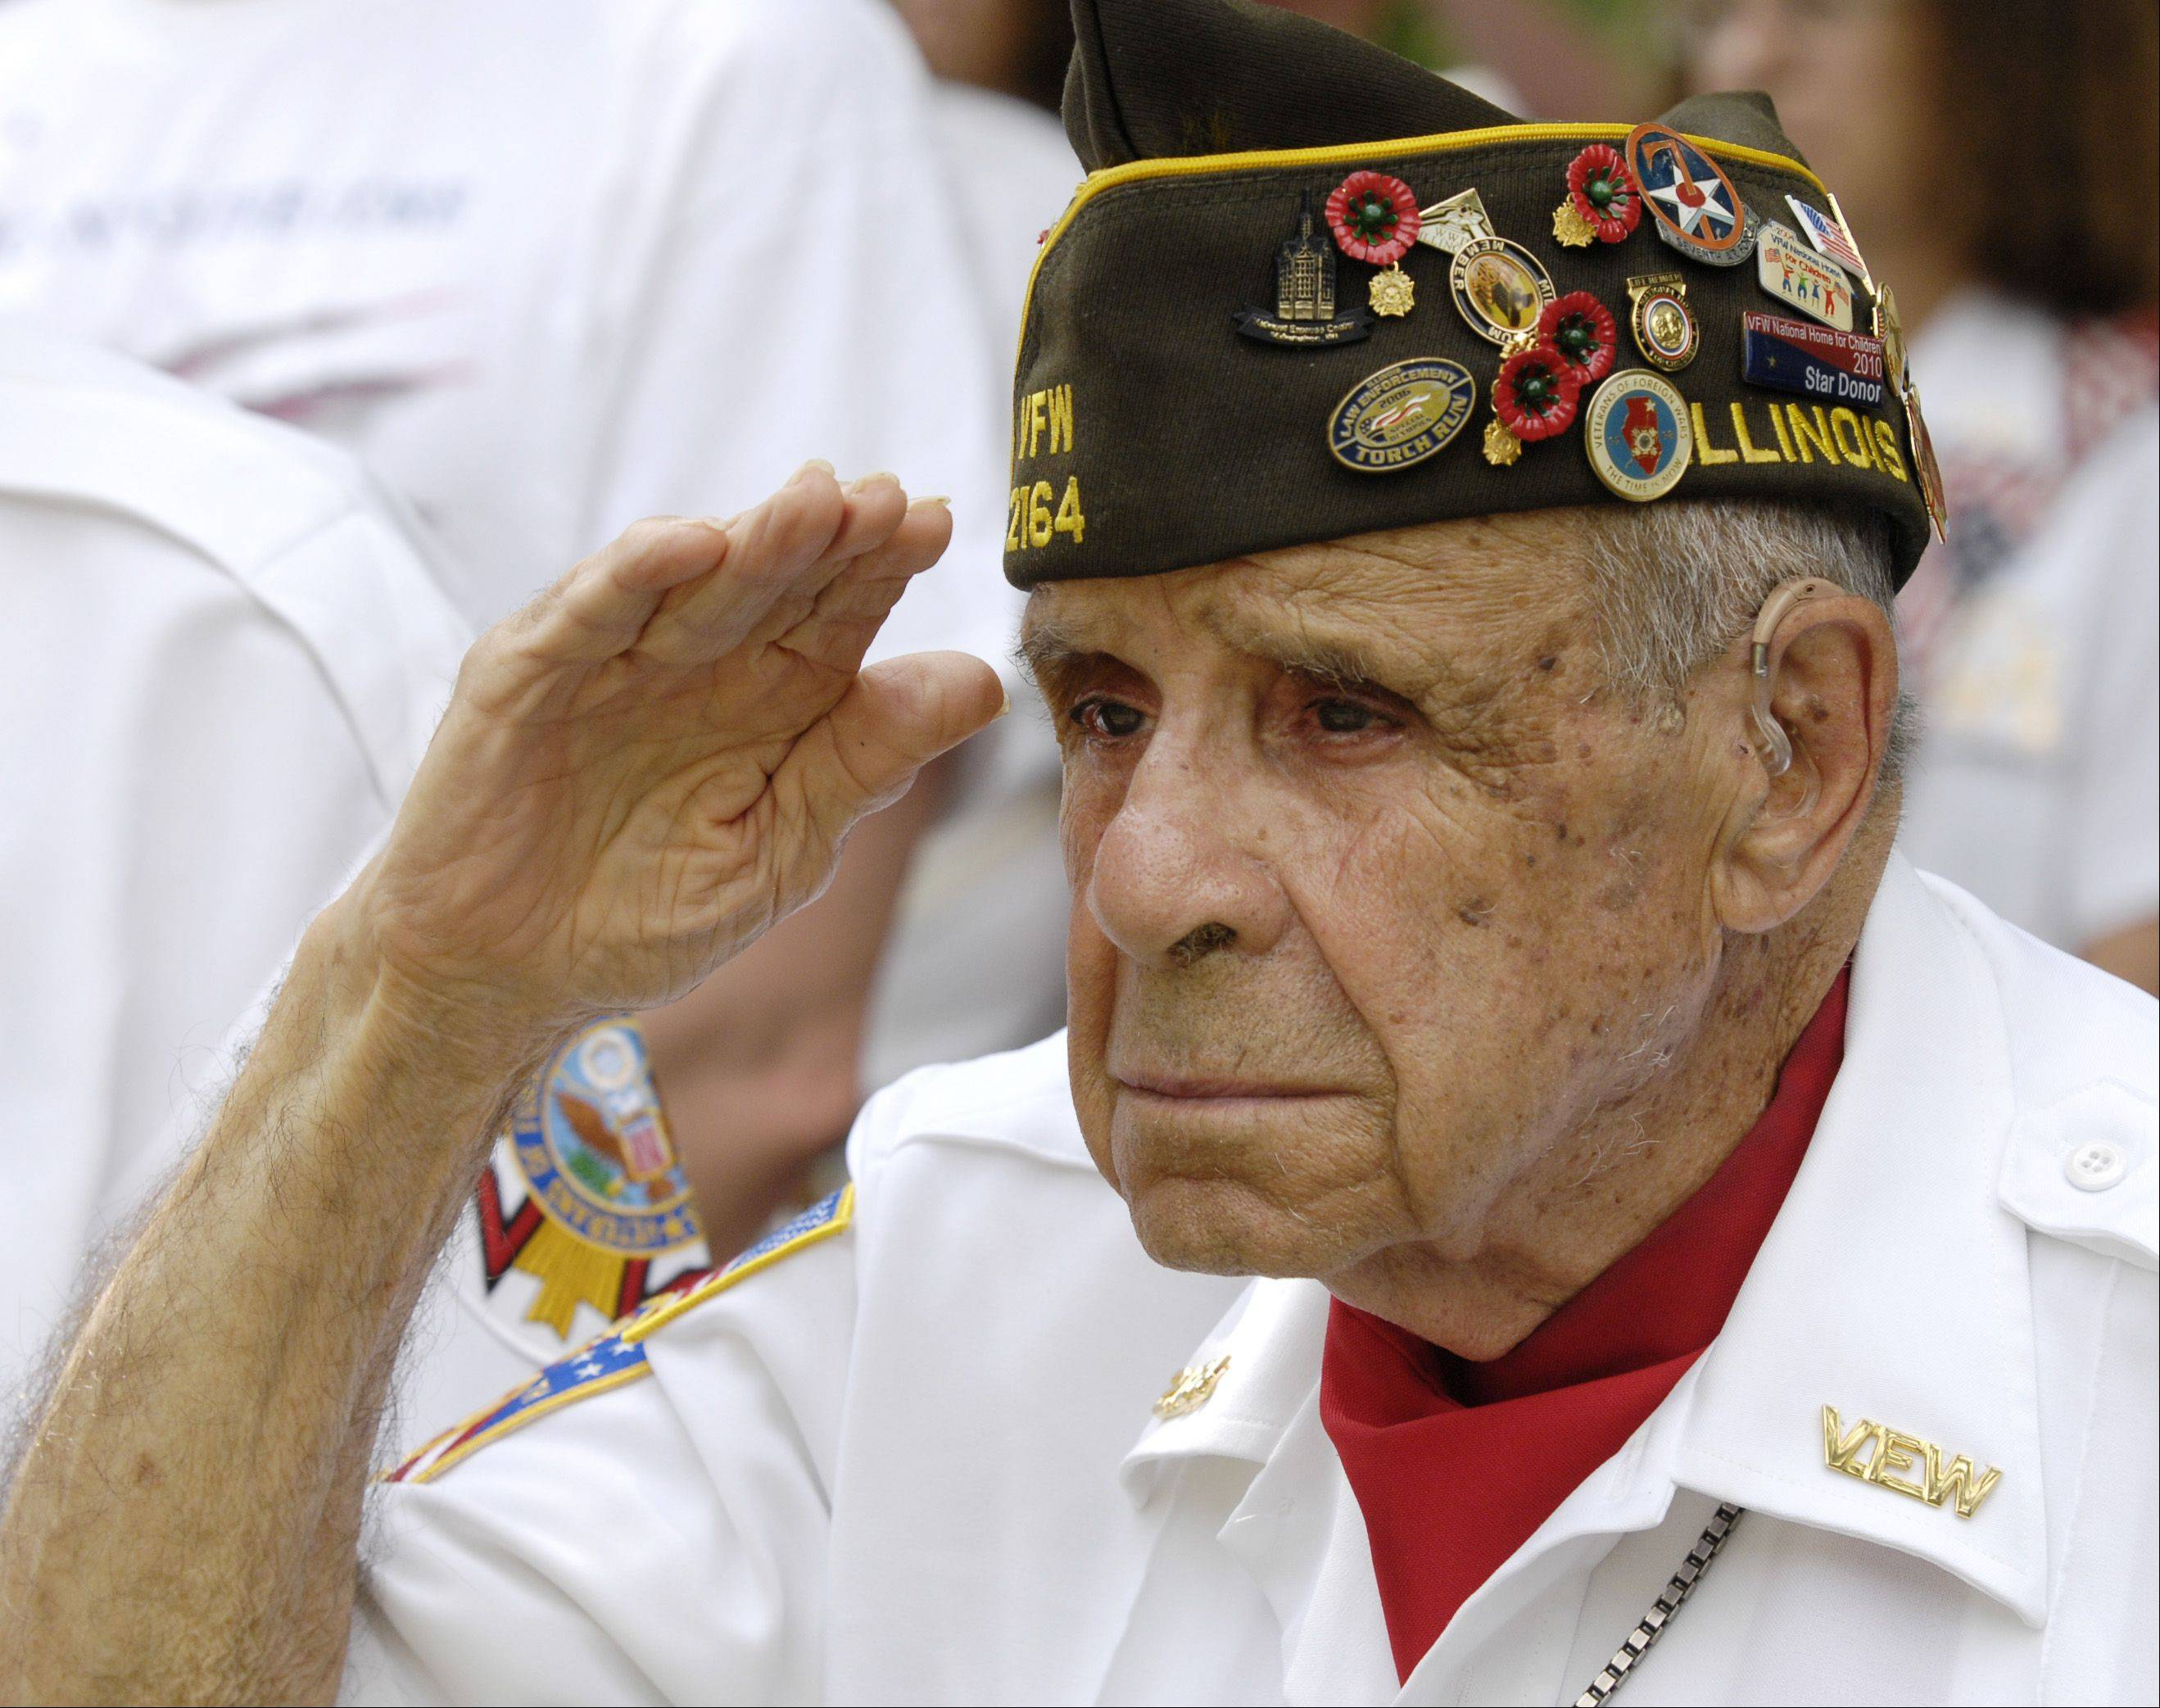 VFW Post 2164 member Louis Licastro a World War II Army Air Corp veteran who survived the Japanese attach on Pearl Harbor in 1941, gives a salute during the Wheaton Memorial Day ceremony at Wheaton Cemetery, Monday.